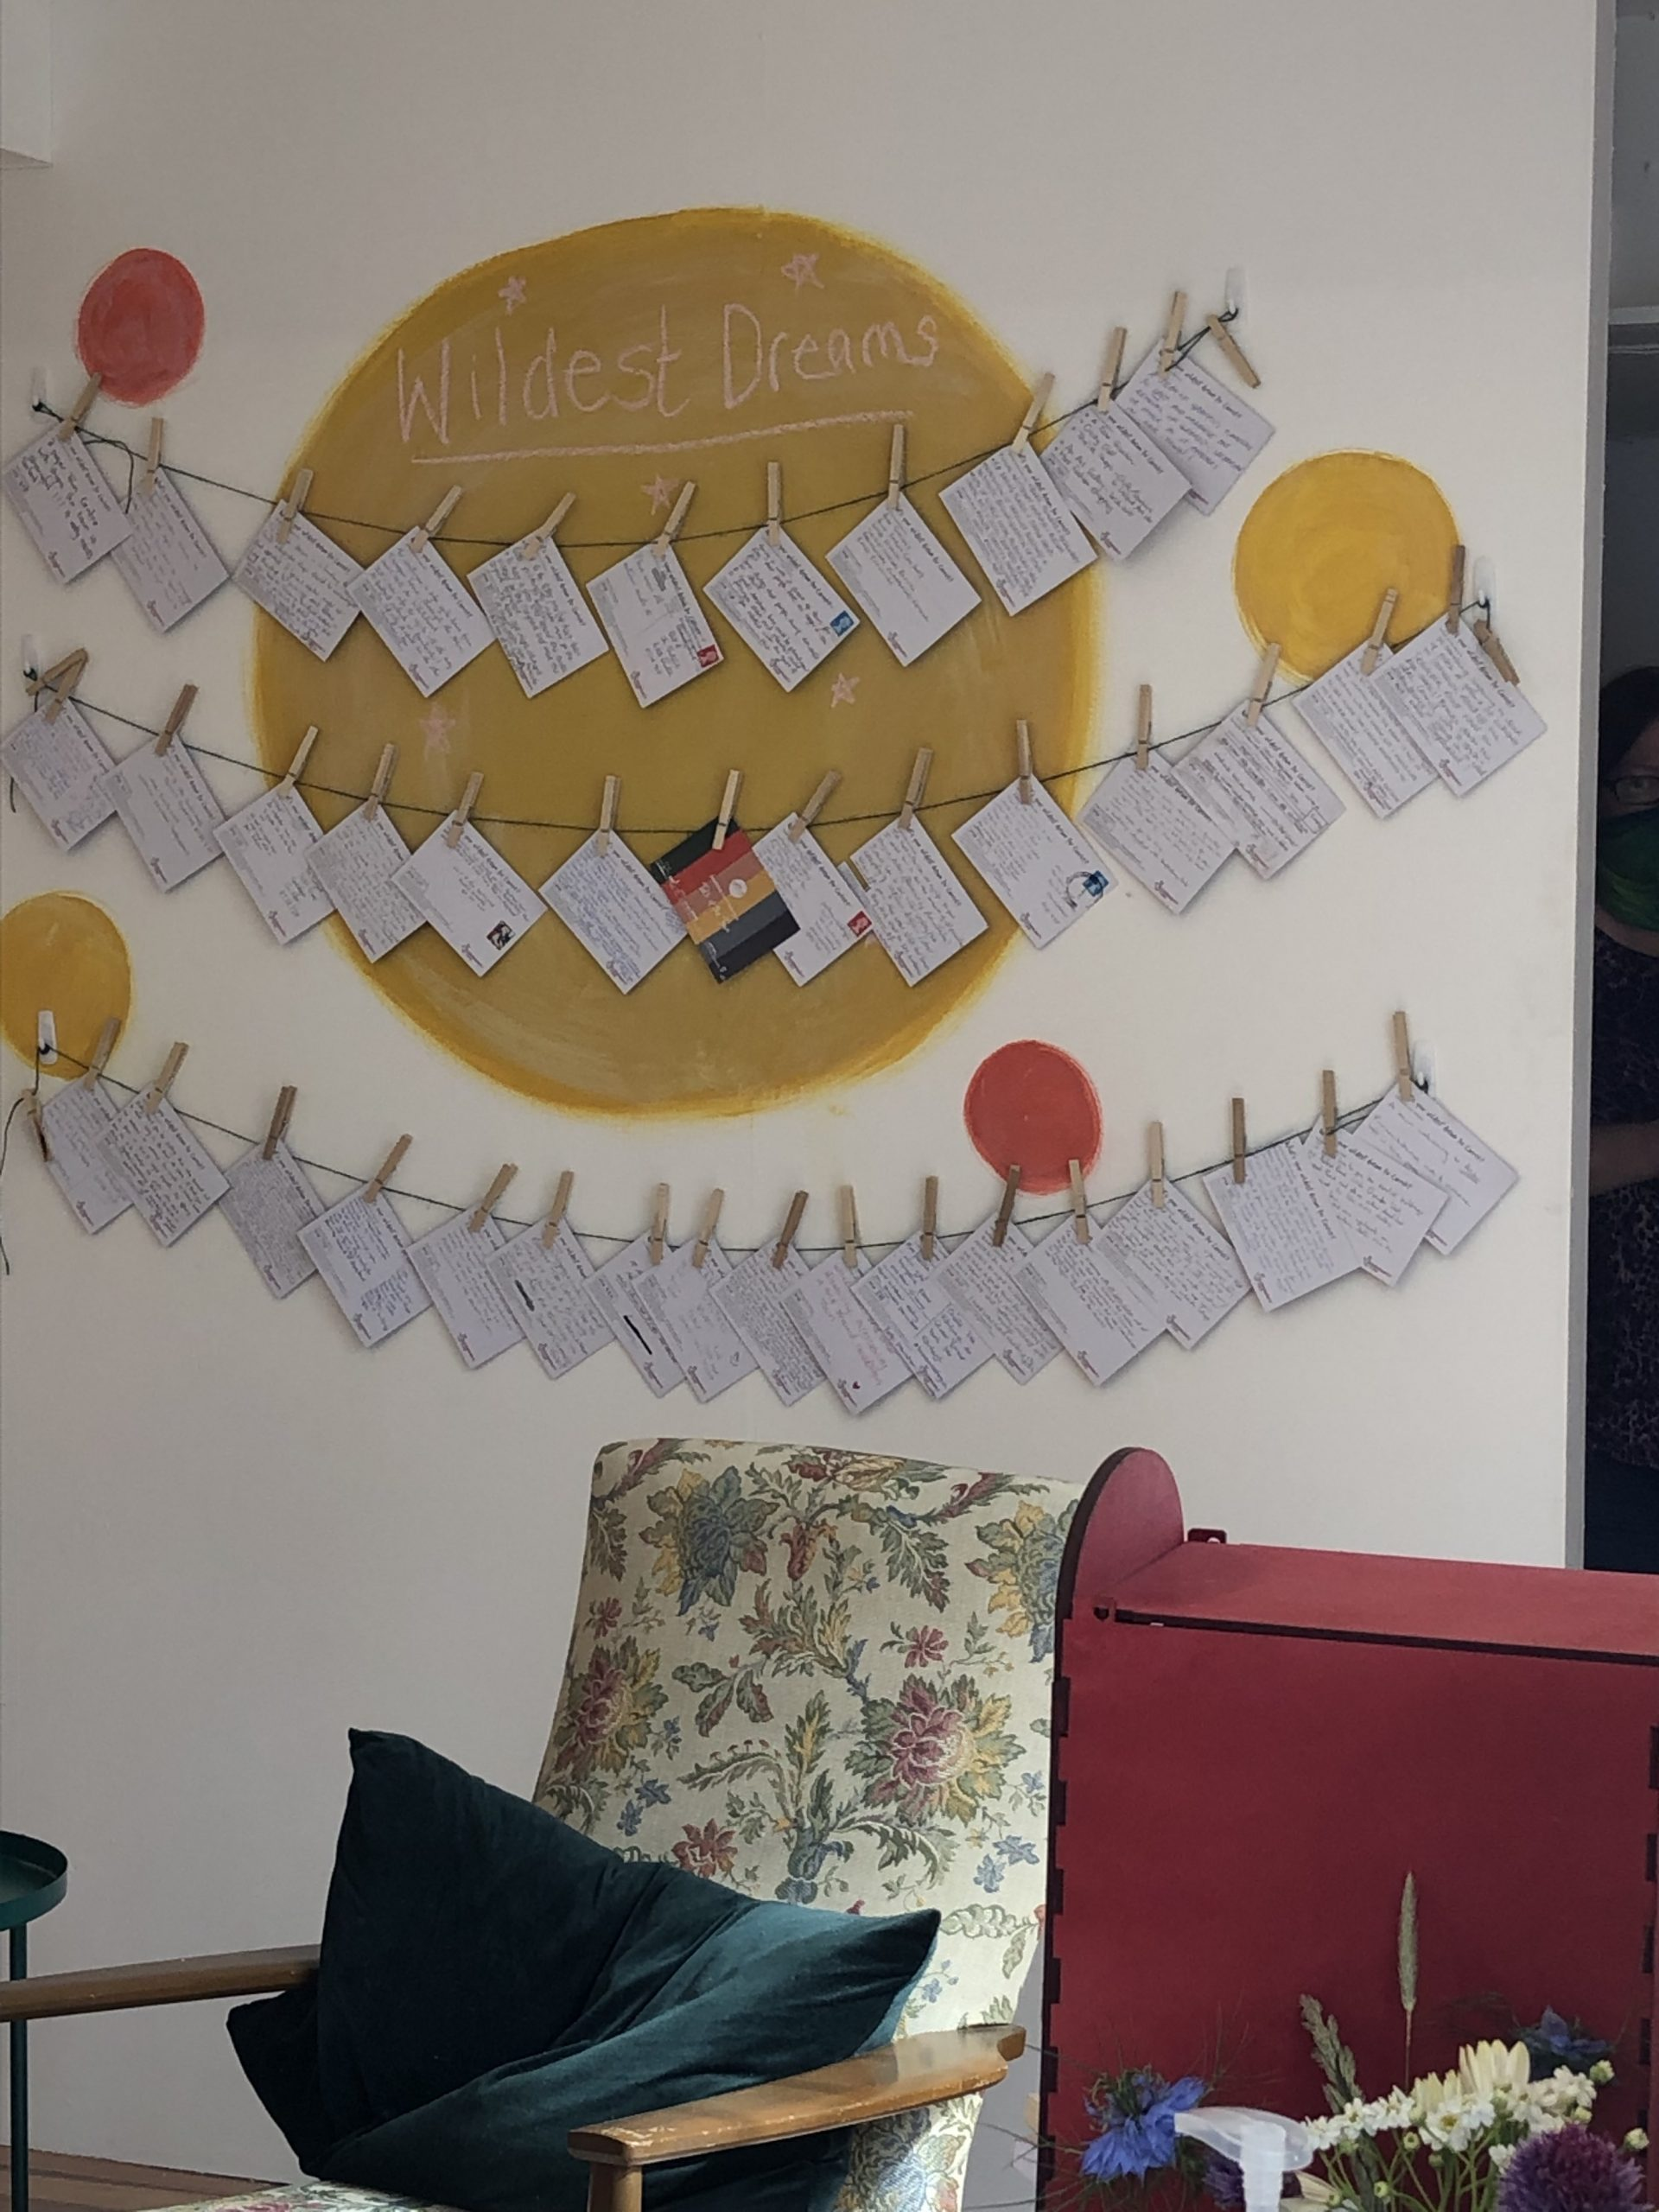 Lots of postcards attached to string by clothes pegs are displayed on a white wall with yellow and red spots